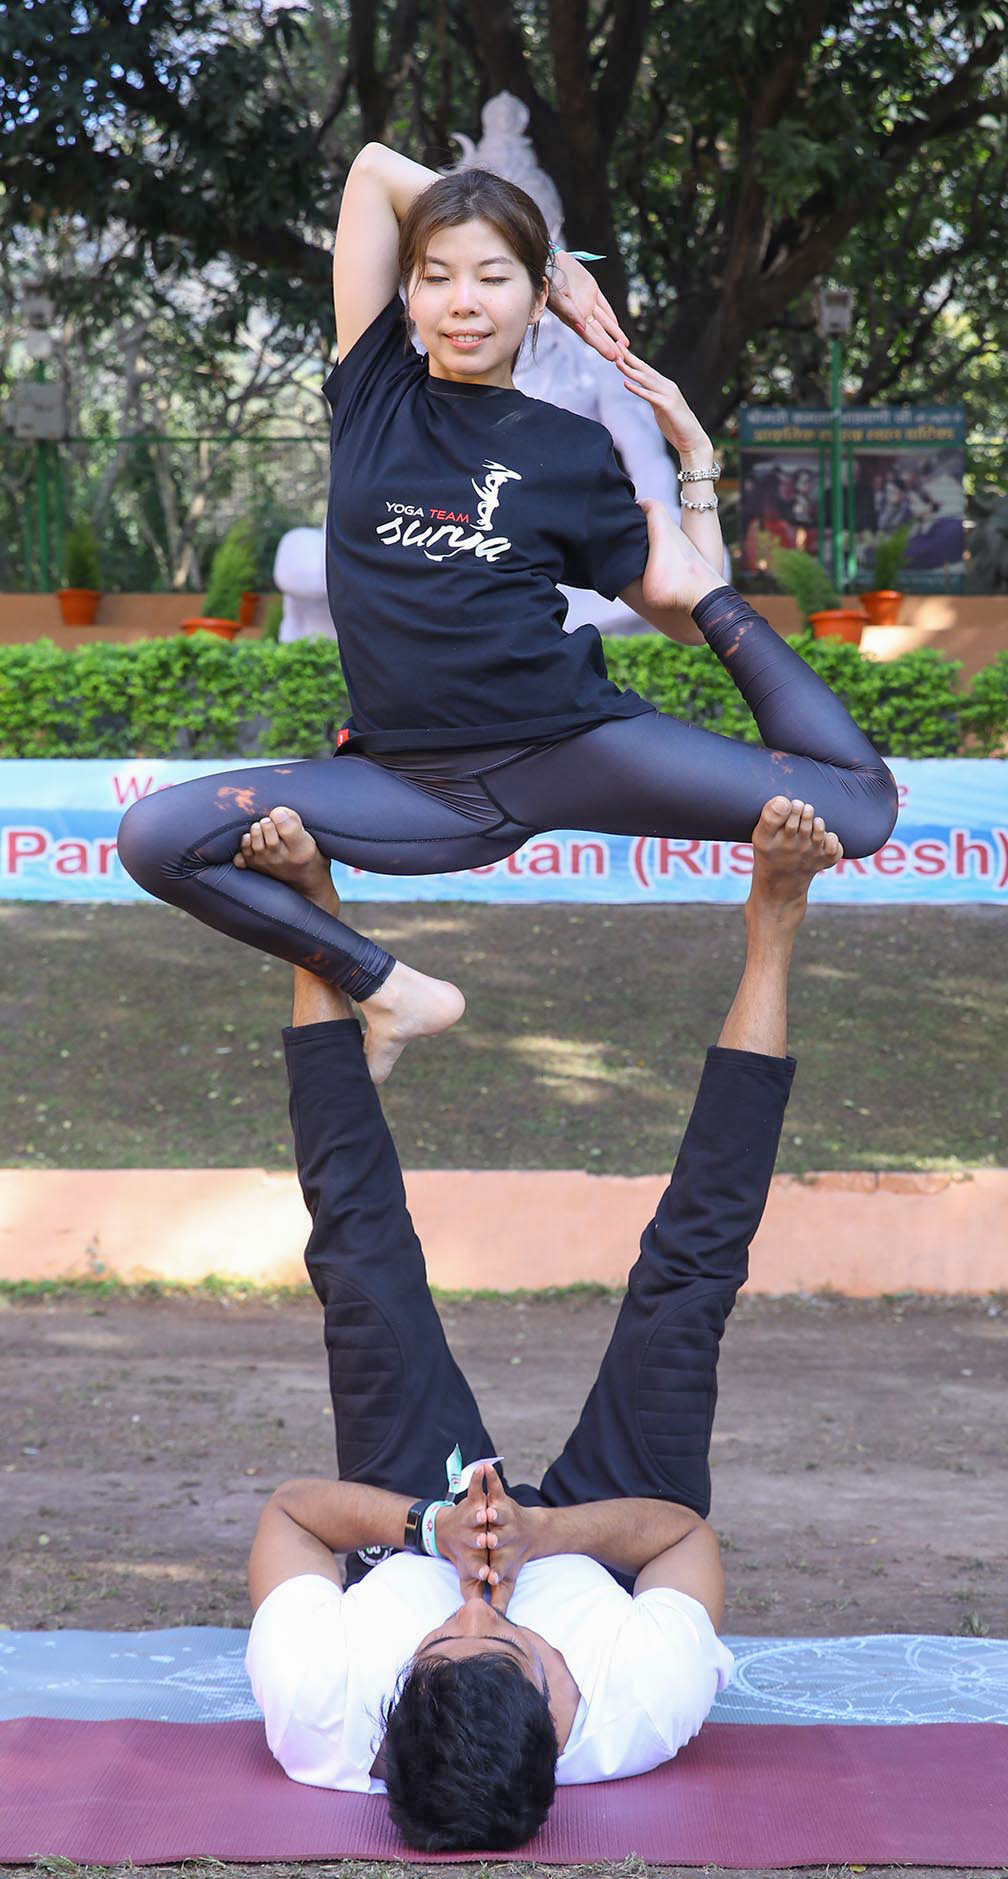 Participants making yoga poses